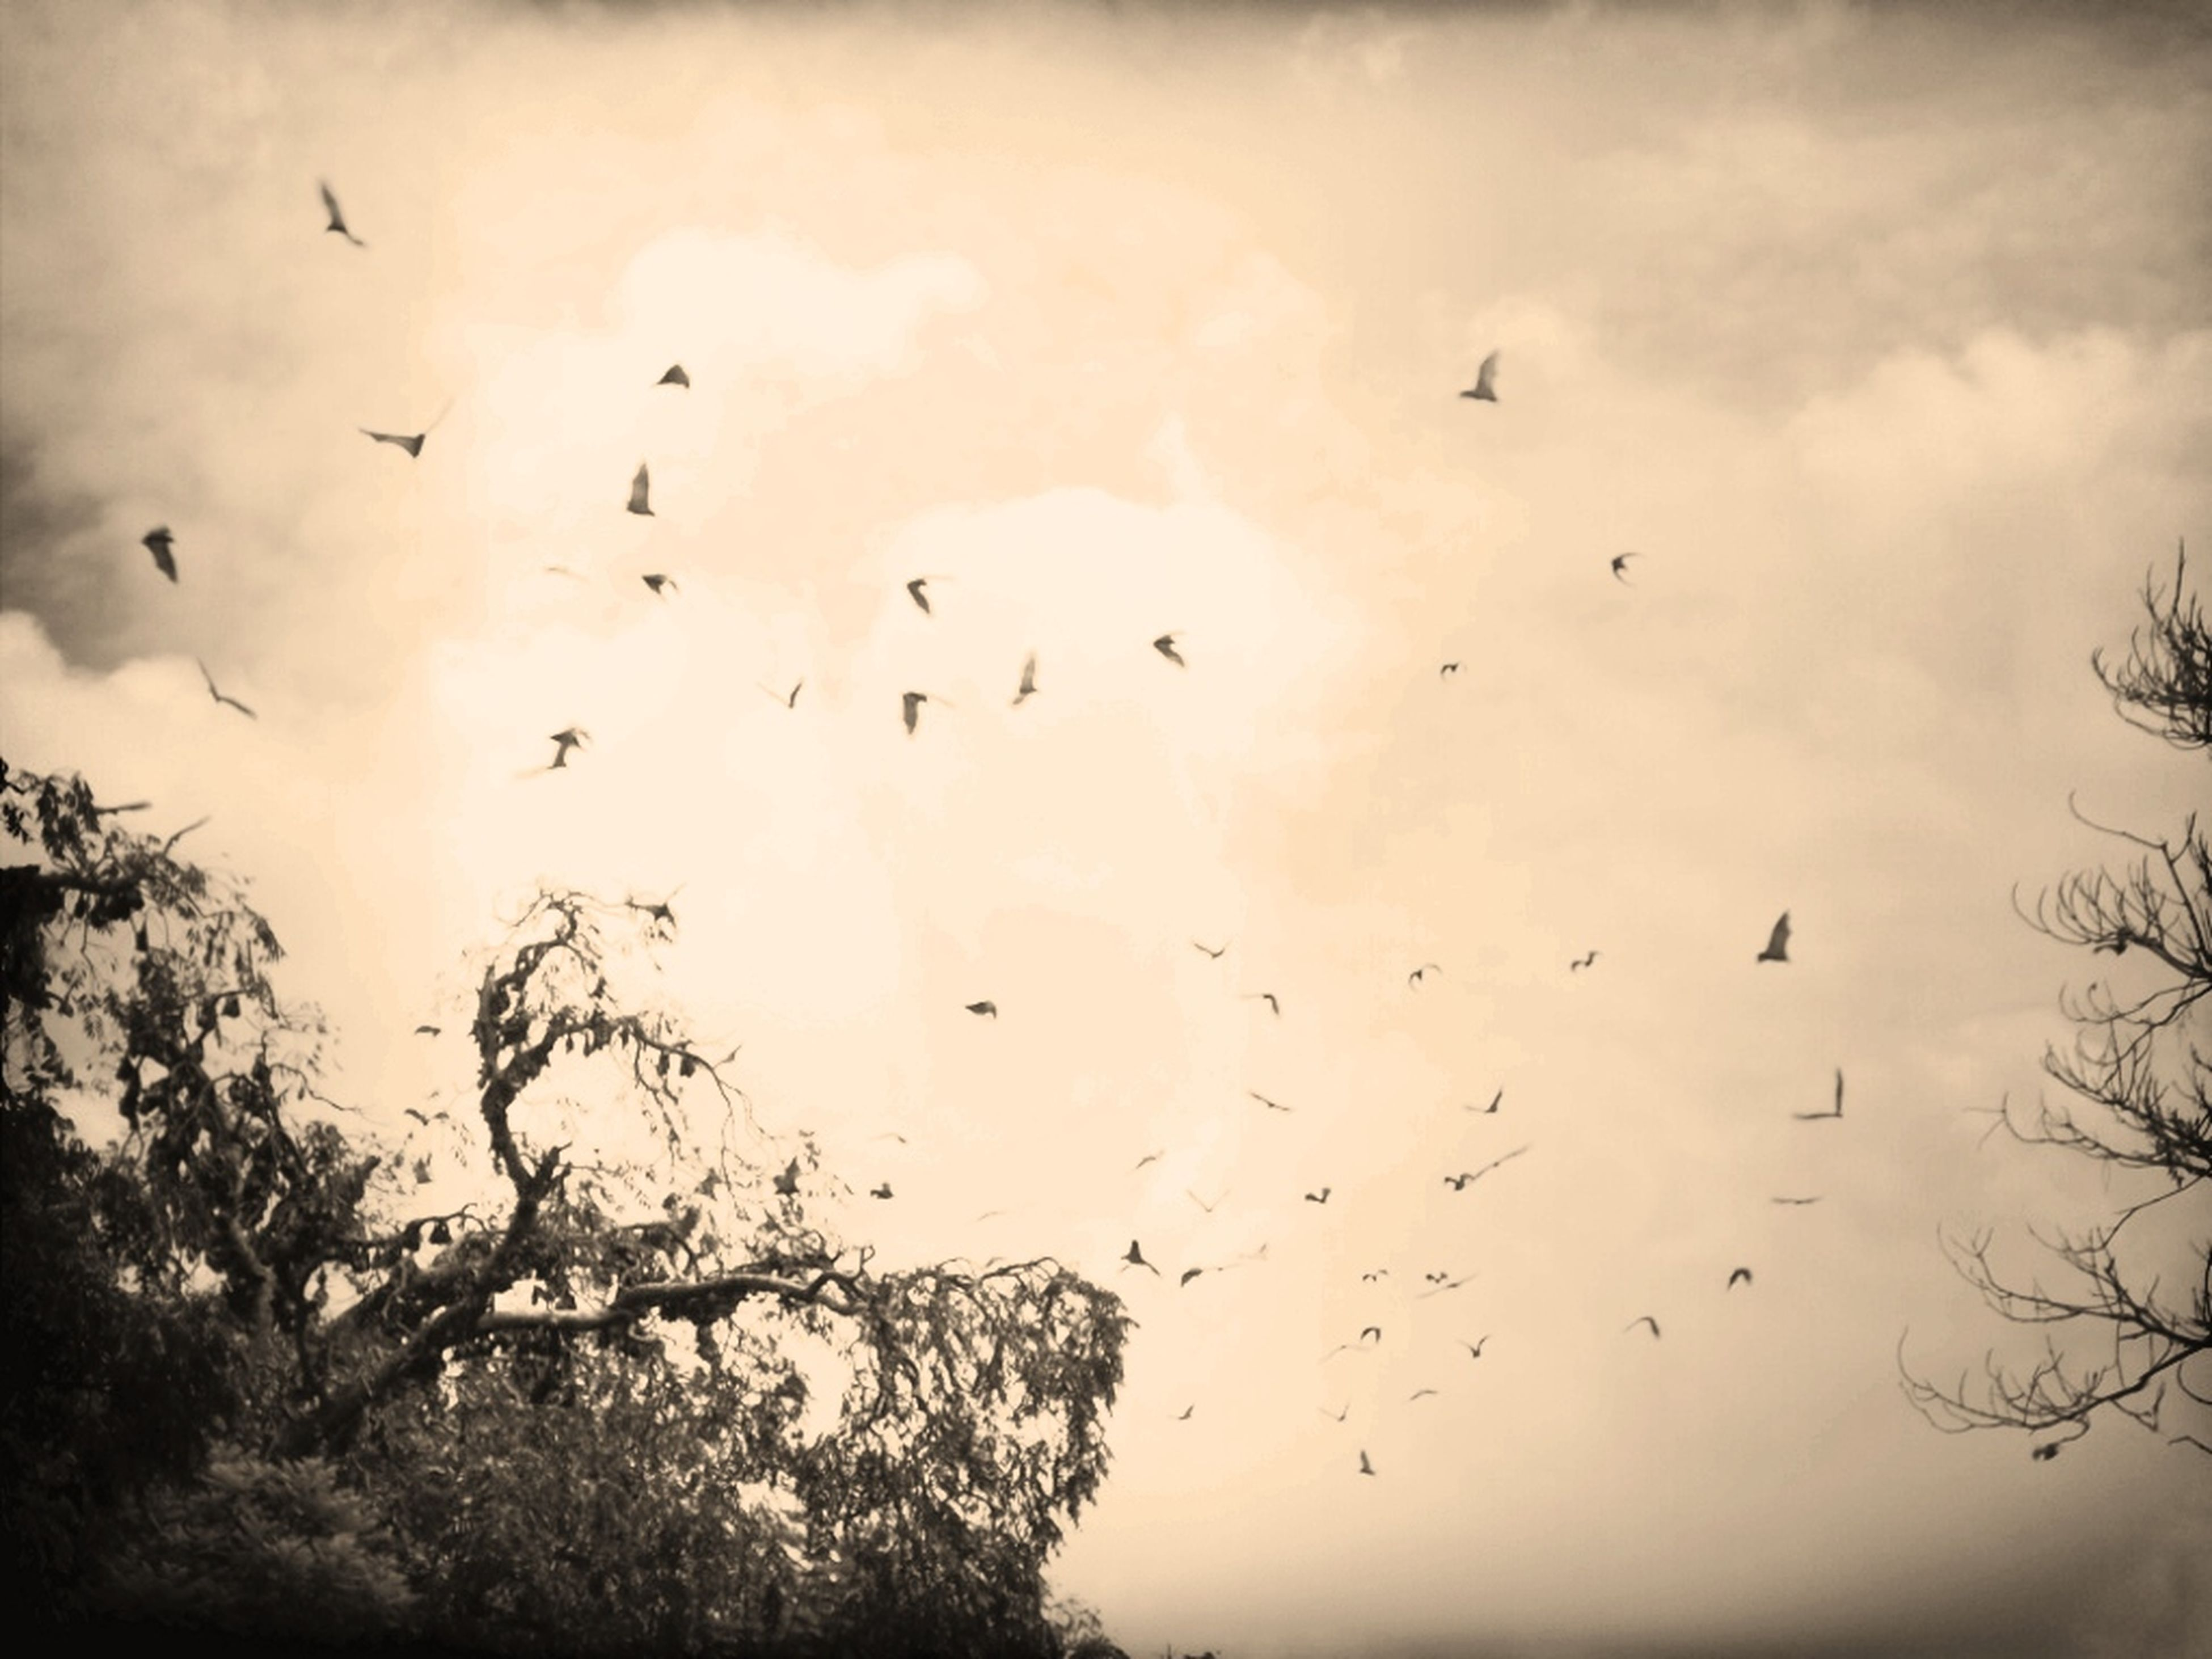 bird, flying, animals in the wild, animal themes, sky, wildlife, flock of birds, low angle view, silhouette, tree, nature, cloud - sky, beauty in nature, tranquility, mid-air, cloudy, outdoors, scenics, cloud